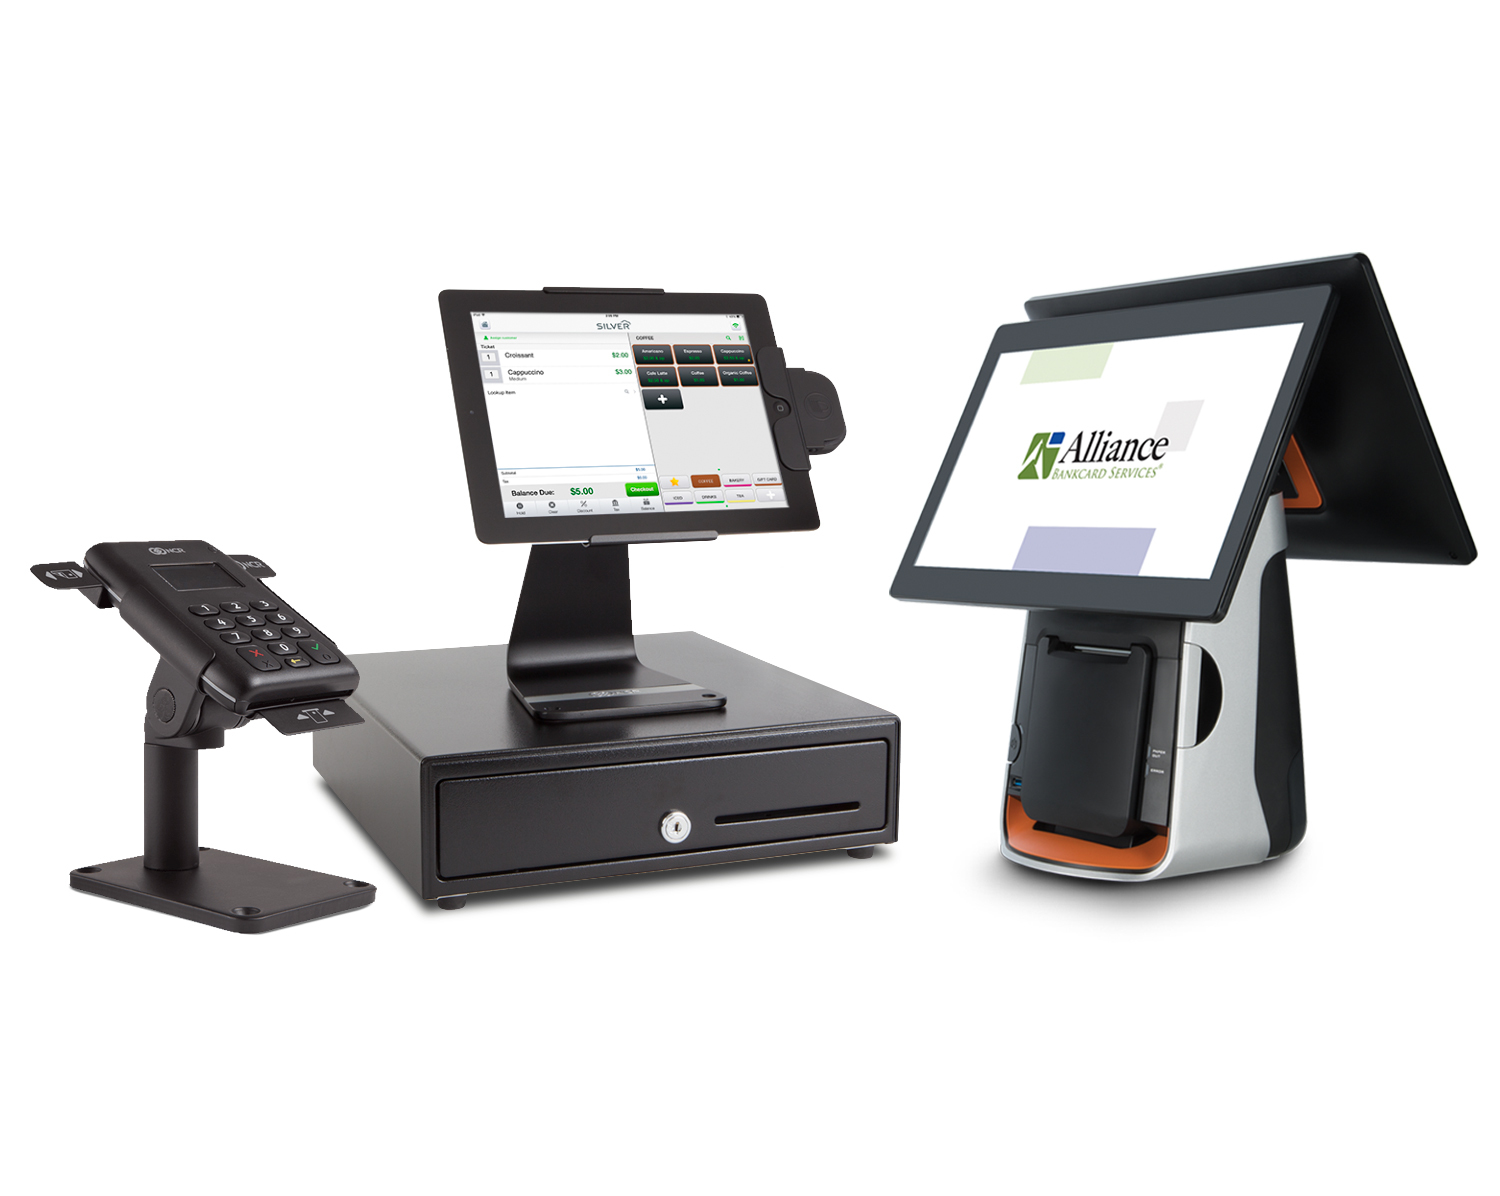 Manipulate A Complete Line of POS Equipment